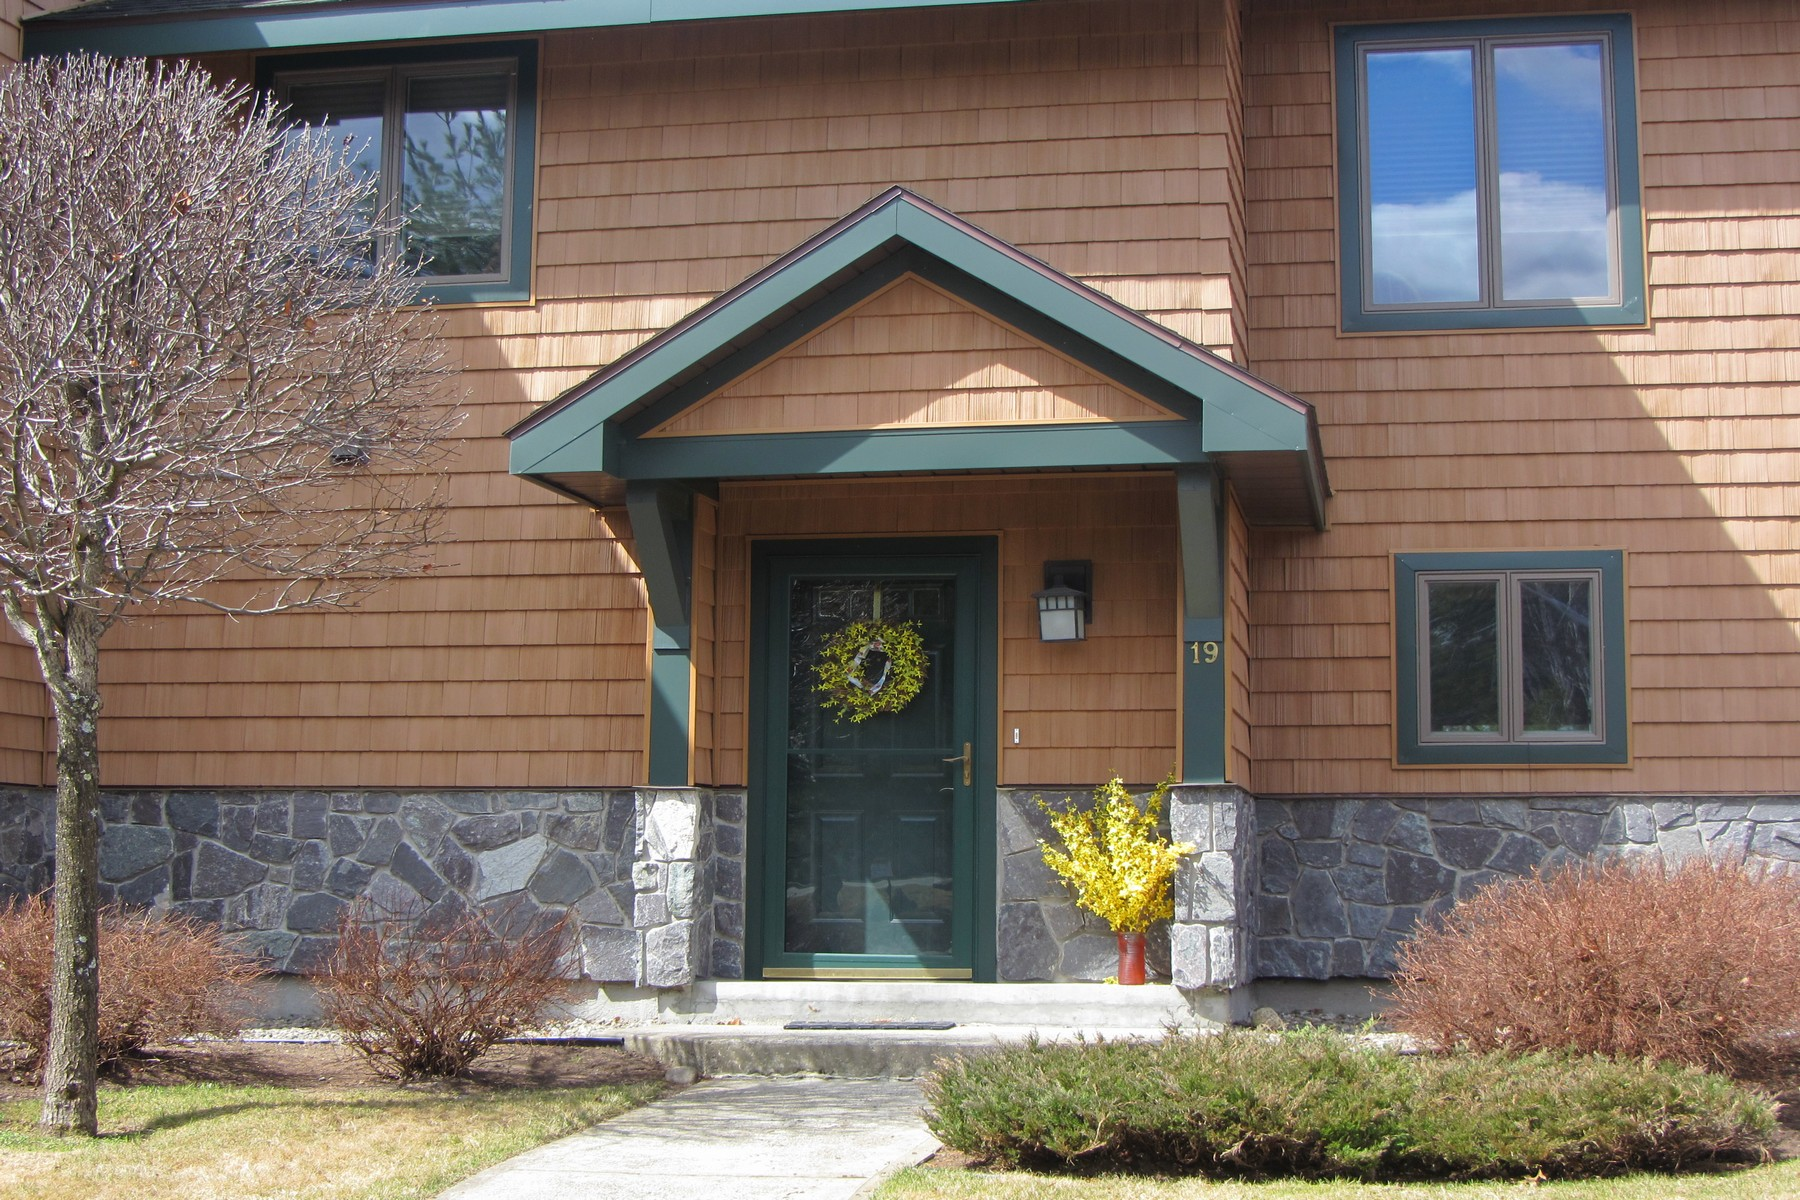 Townhouse for Sale at Luxury Townhouse 19 Dunn Way Lake Placid, New York 12946 United States